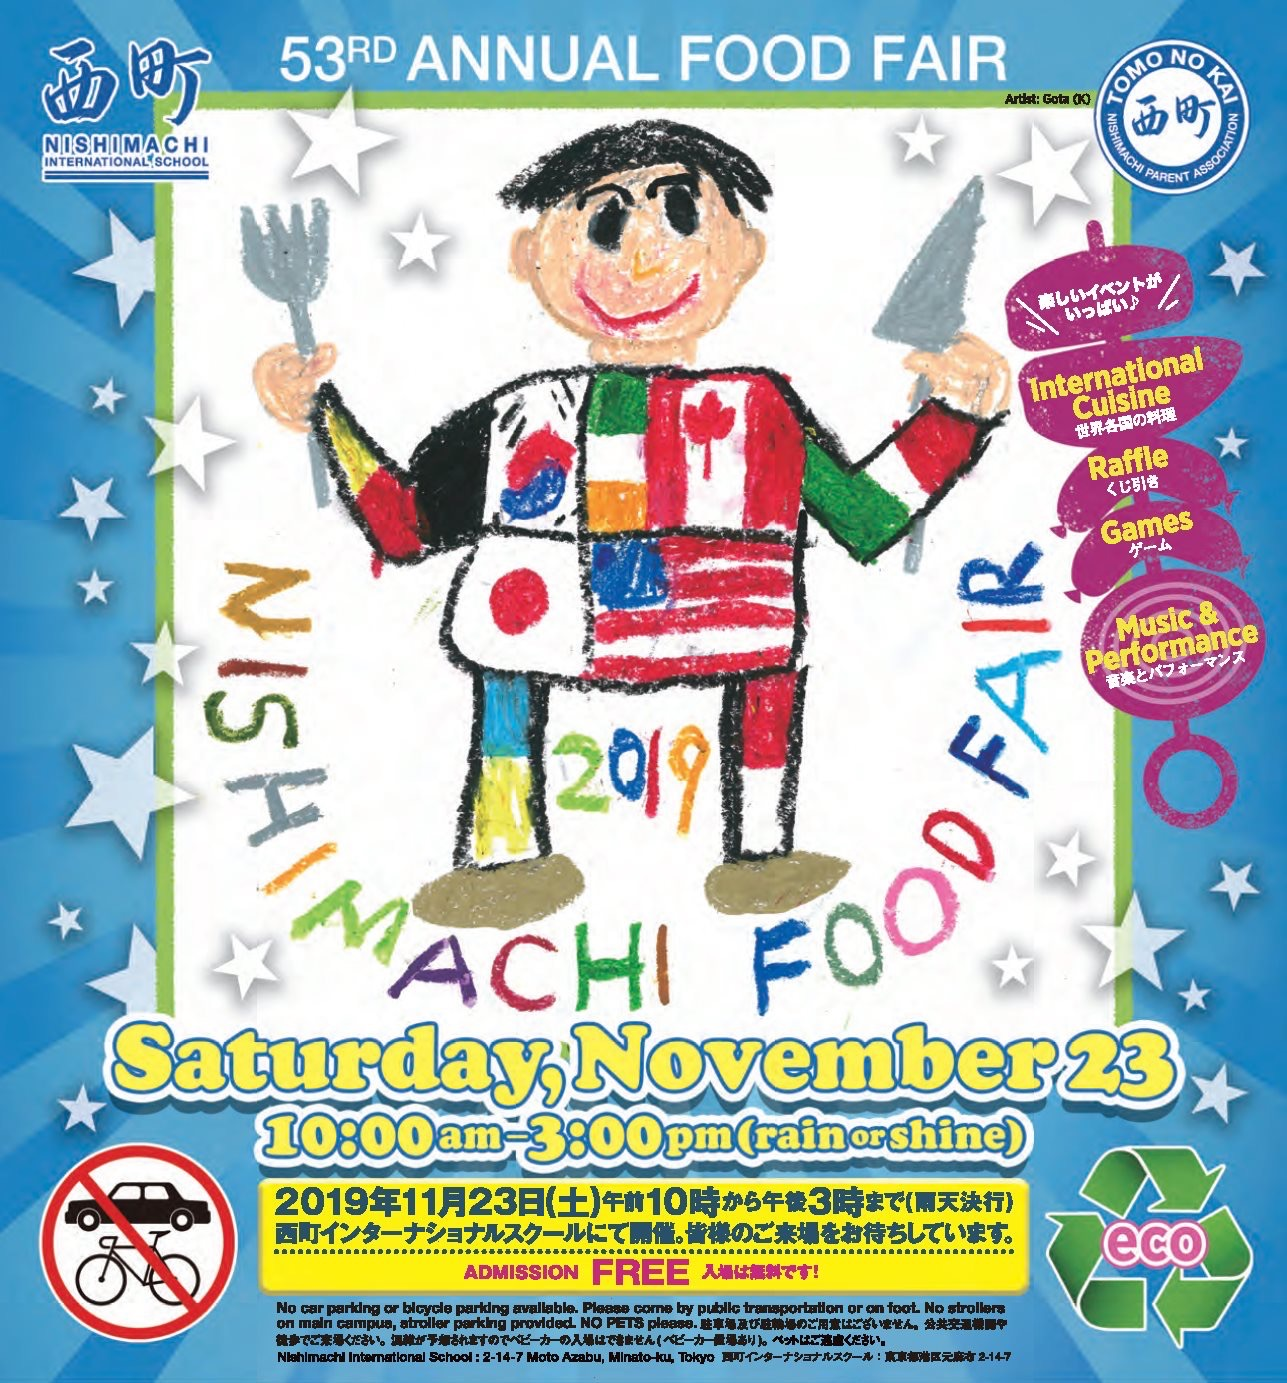 Nishimachi Food Fair